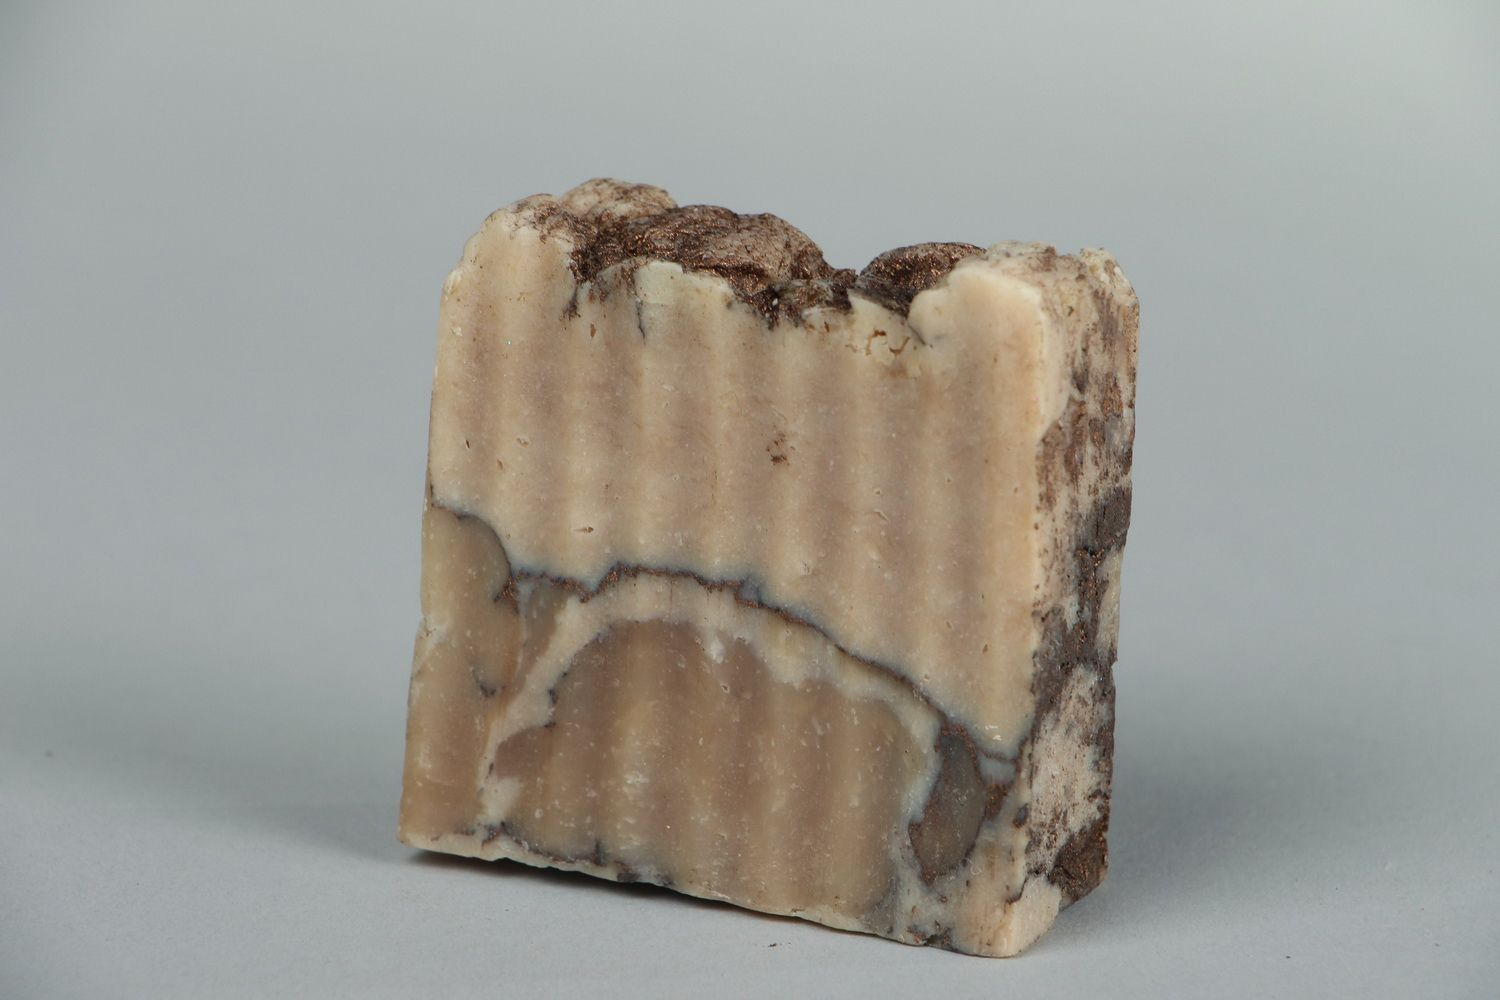 Handmade soap with almond oil photo 1